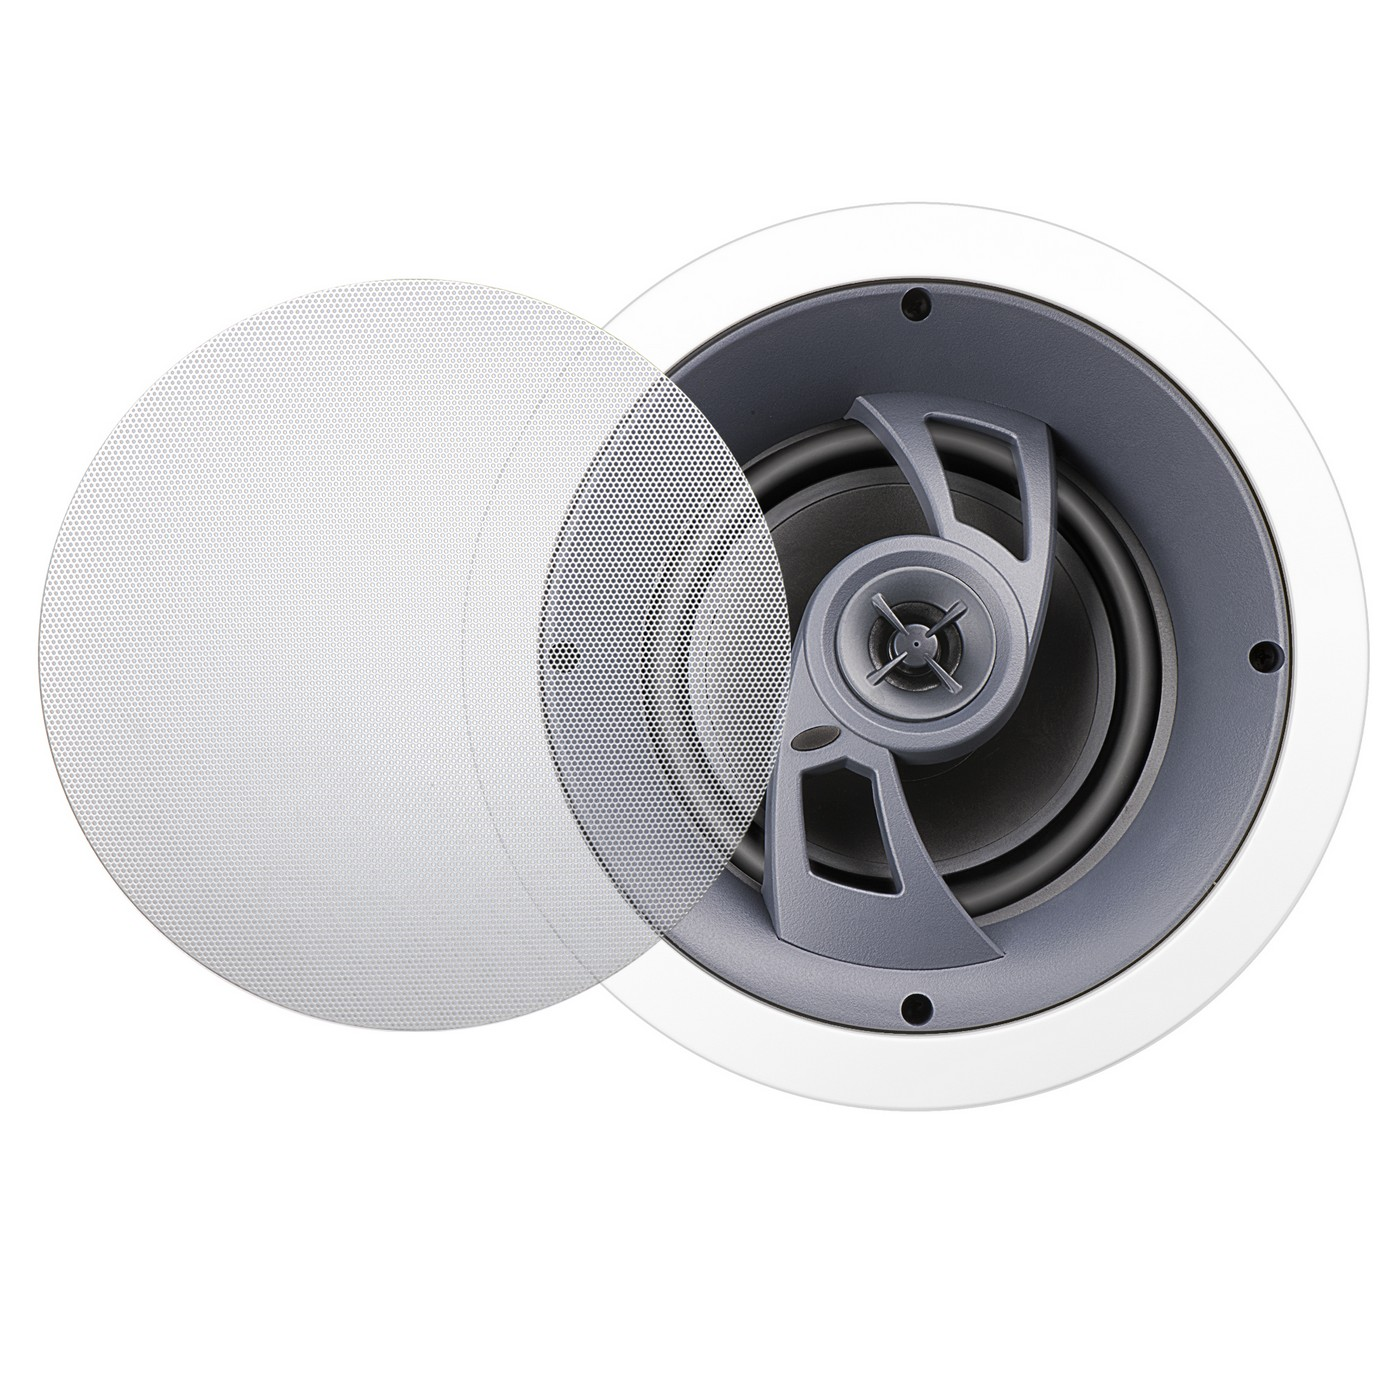 """6.5"""" Angled LCR Dolby Atmos® Ready In-Ceiling Speaker w/ Pivoting Tweeter, Single - ICE630"""